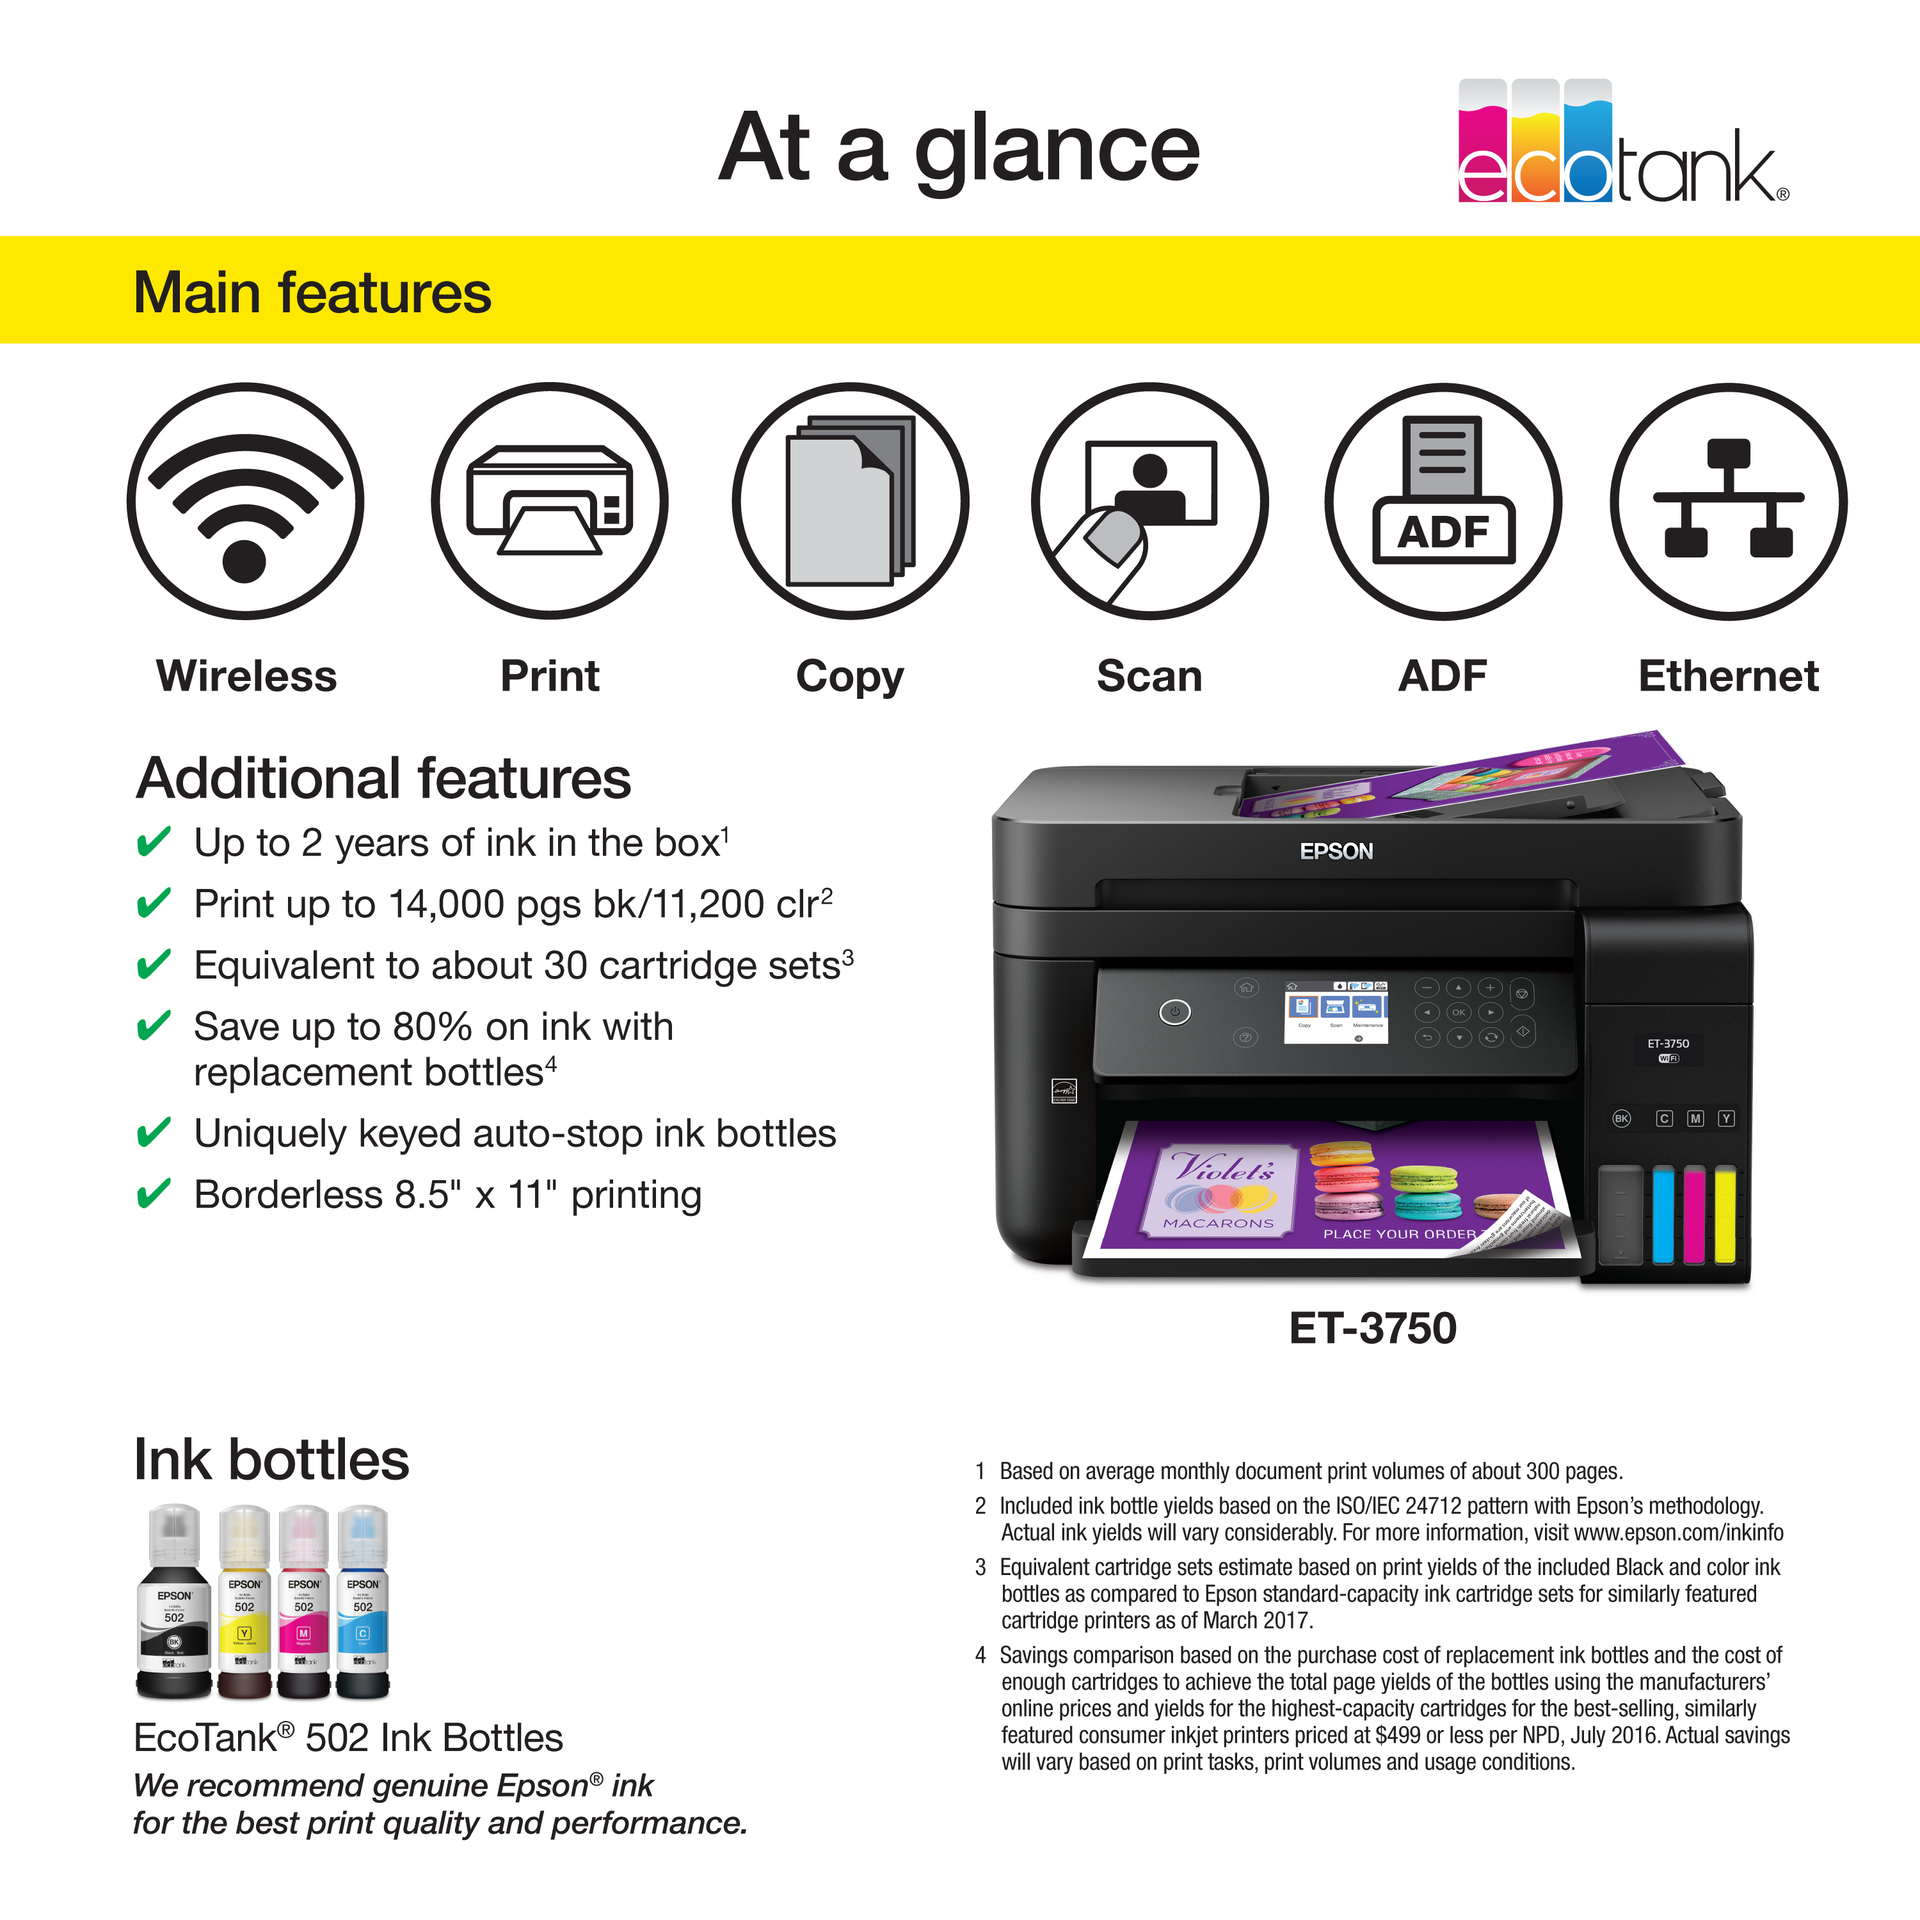 Epson WorkForce ET-3750 EcoTank Wireless All-in-One Supertank Inkjet  Printer, 8 0ppm Color, 4800x1200 dpi - Print, Copy, Scan, ADF